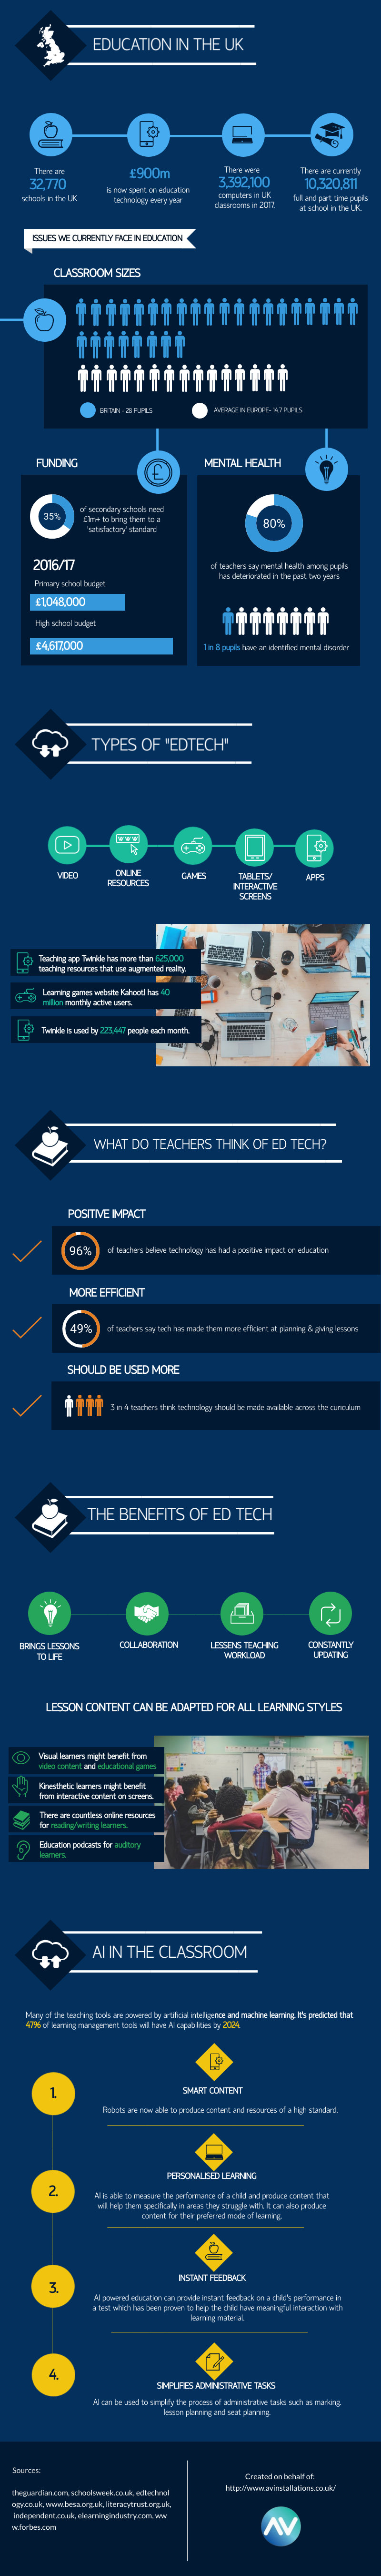 How Technology is Changing Teaching & Learning #infographic #Education